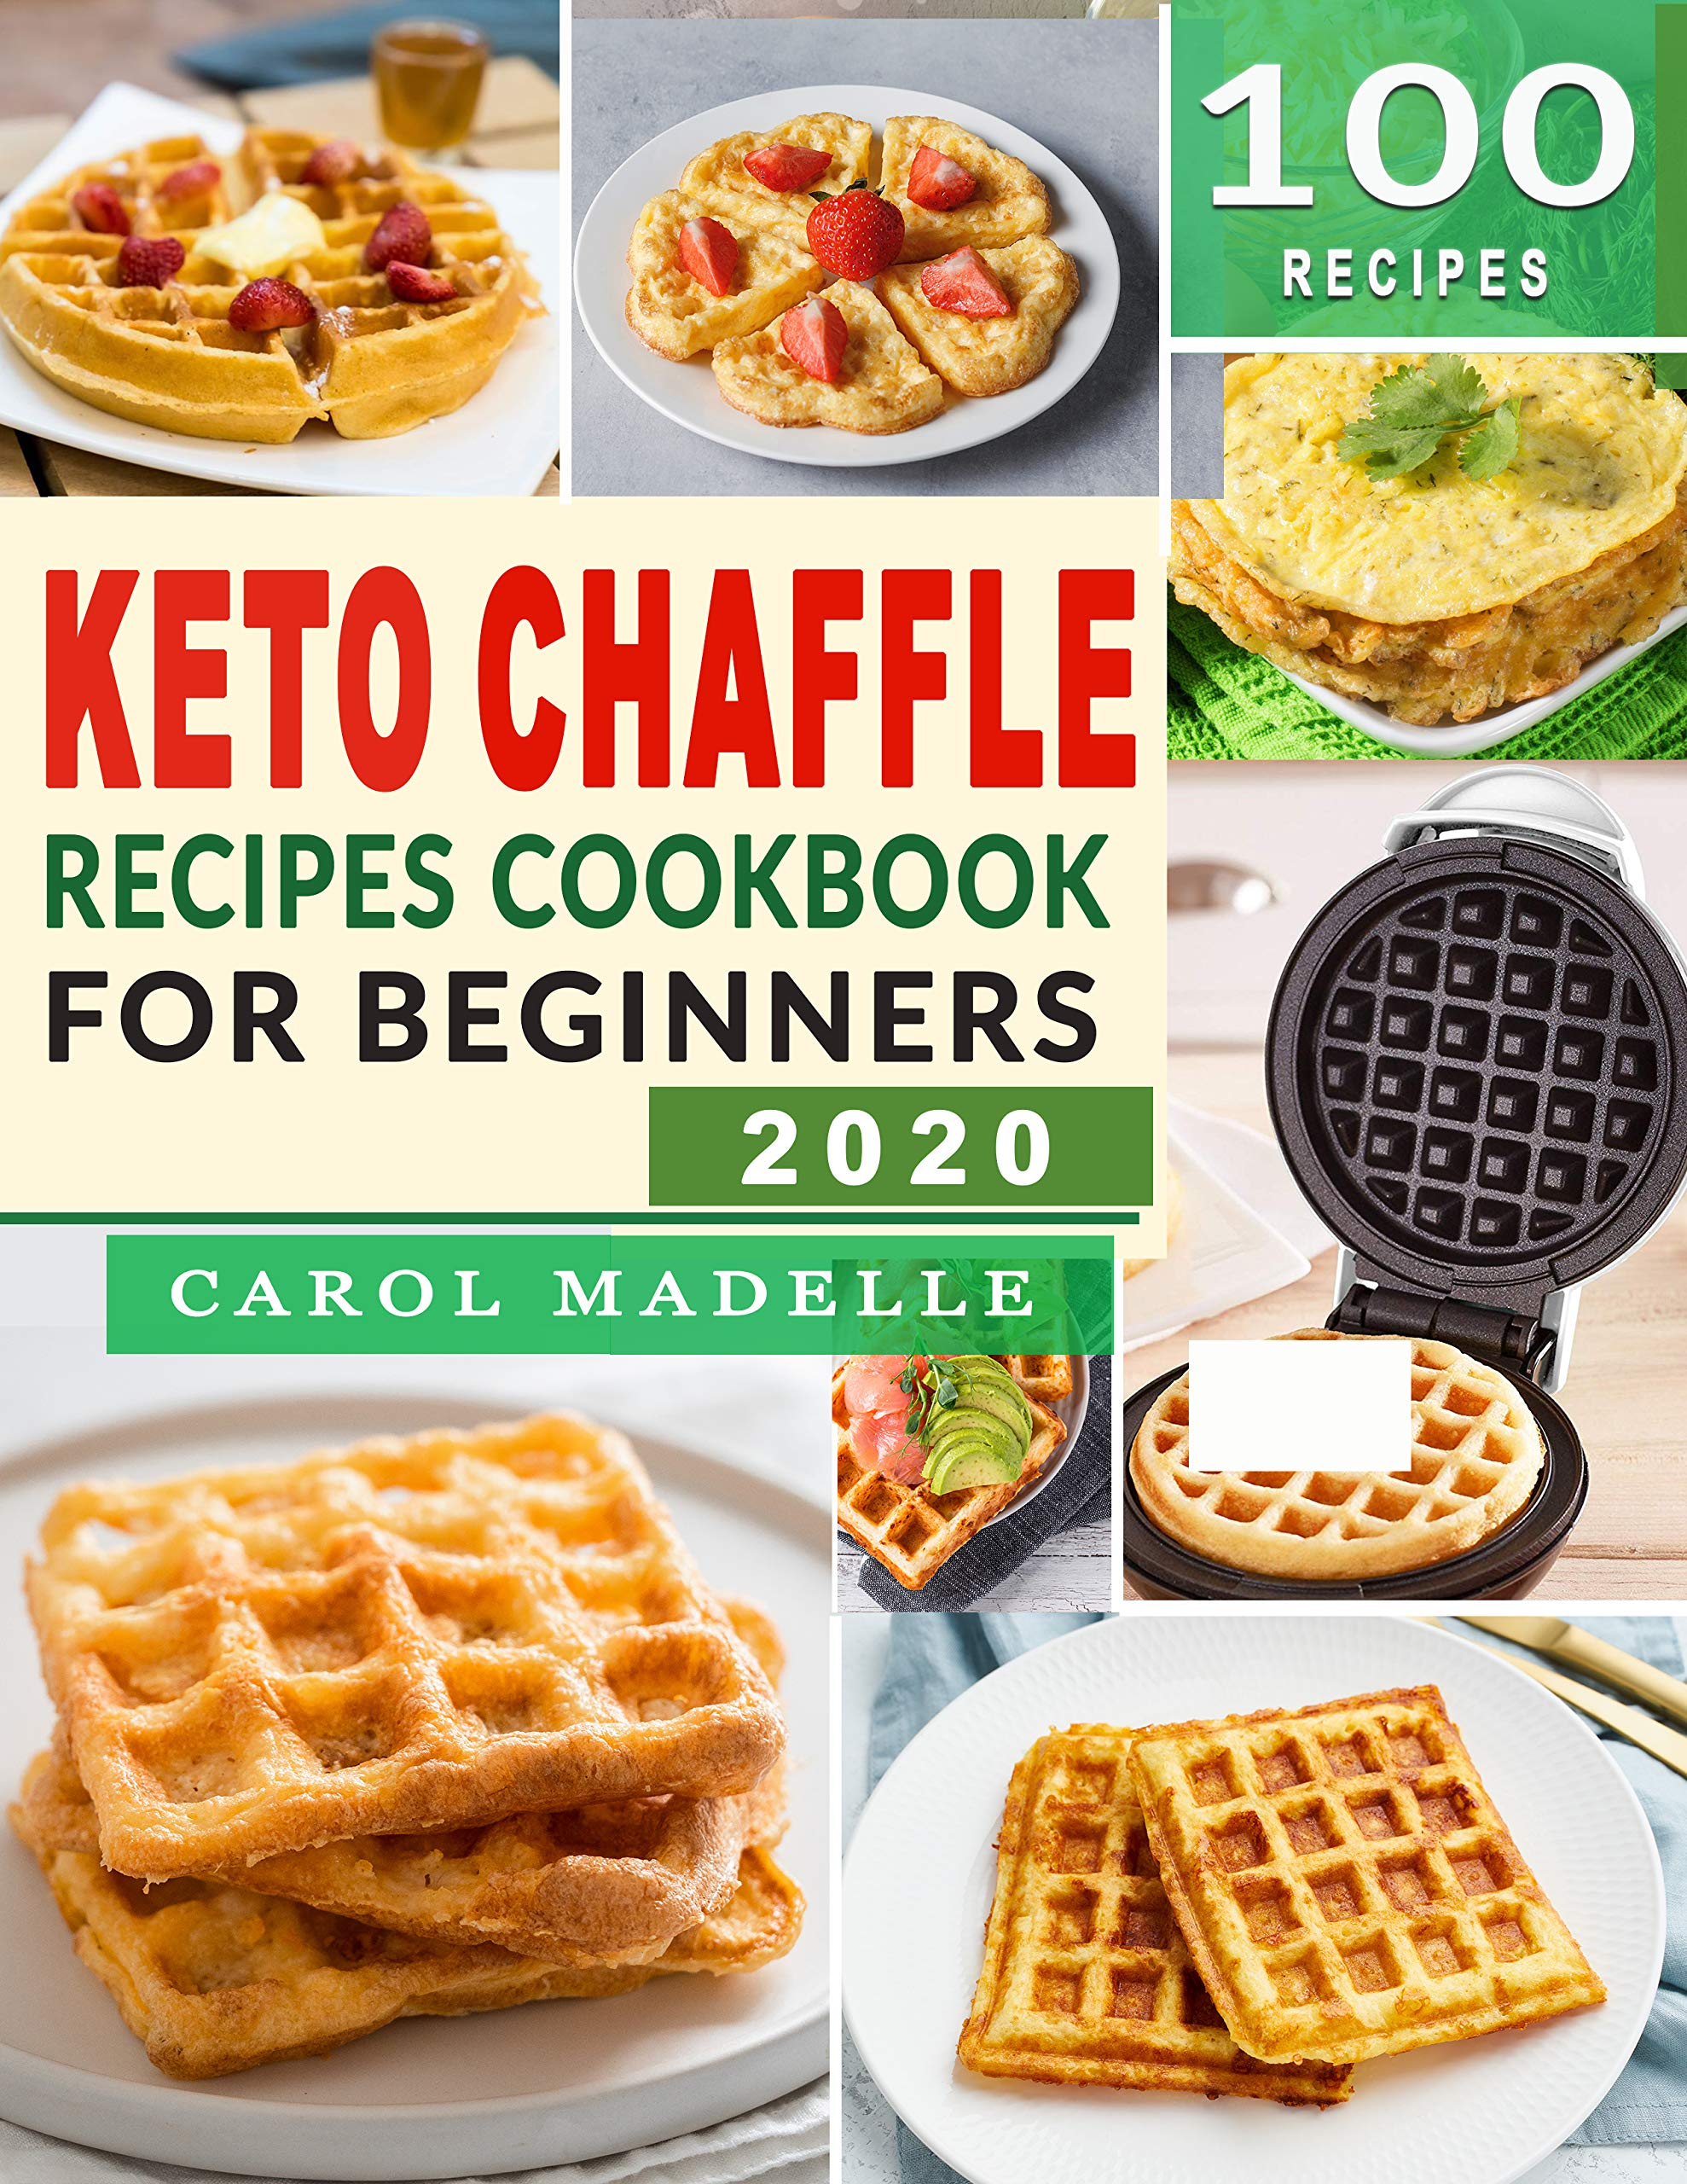 Keto Chaffle Recipes Cookbook for Beginners: Easy, Vibrant & Irresistible Low Carb Ketogenic Waffles to Make, Bake & Toast! + Secret Hacks & Tips to a Crispier Chaffle